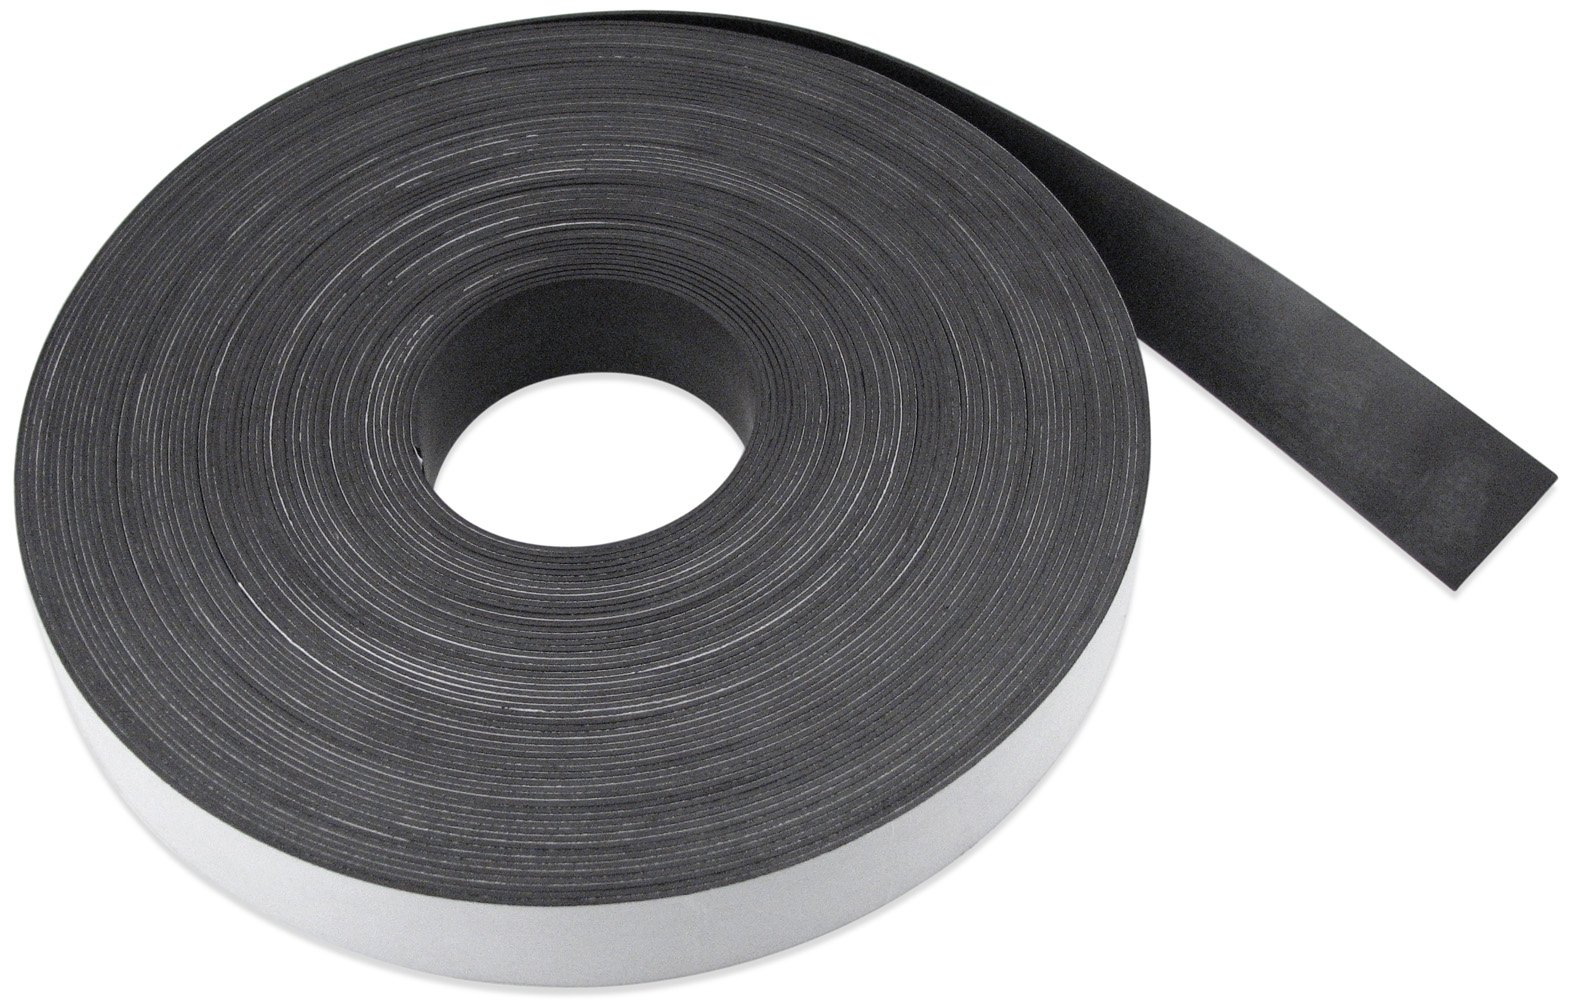 Flexible Magnet Strip with White Vinyl Coating, 1/32'' Thick, 2'' Height, 200 Feet, 1 Roll